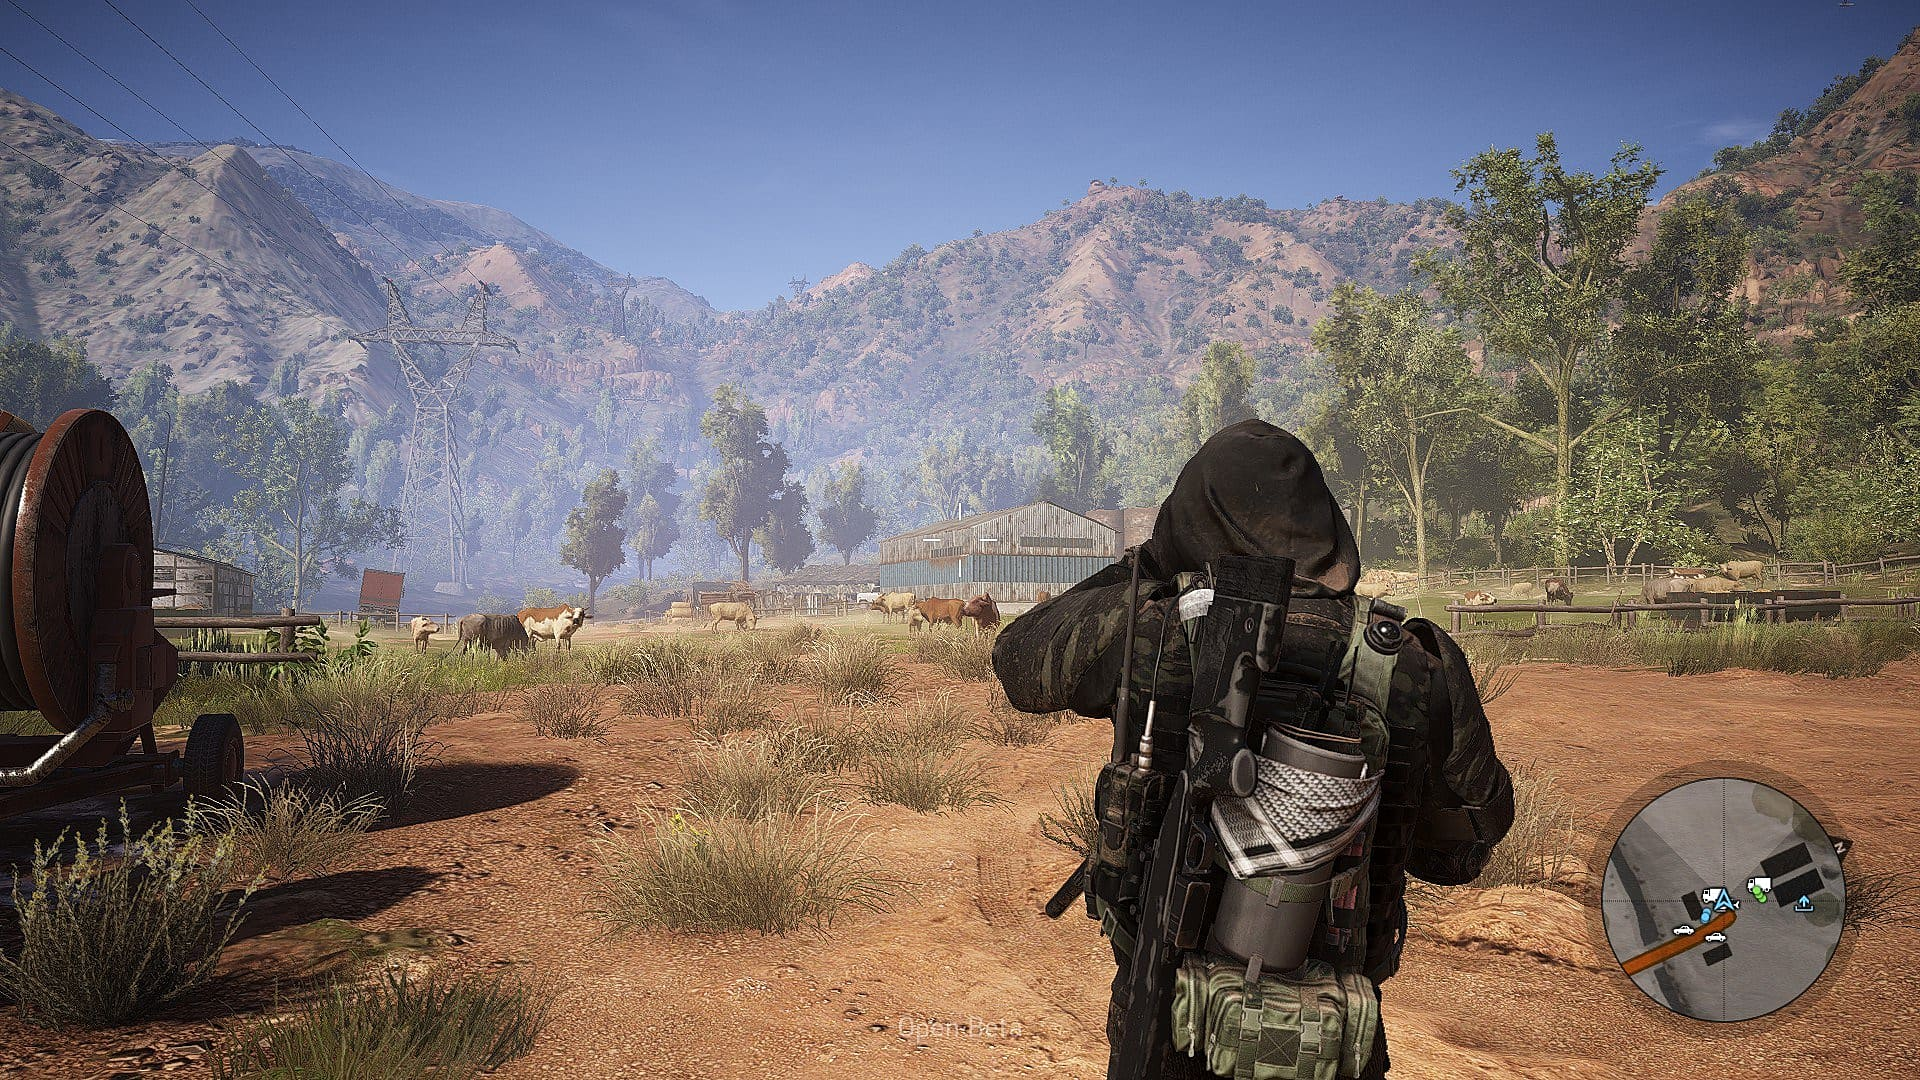 how to turn off auto hover helicopter ghost recon